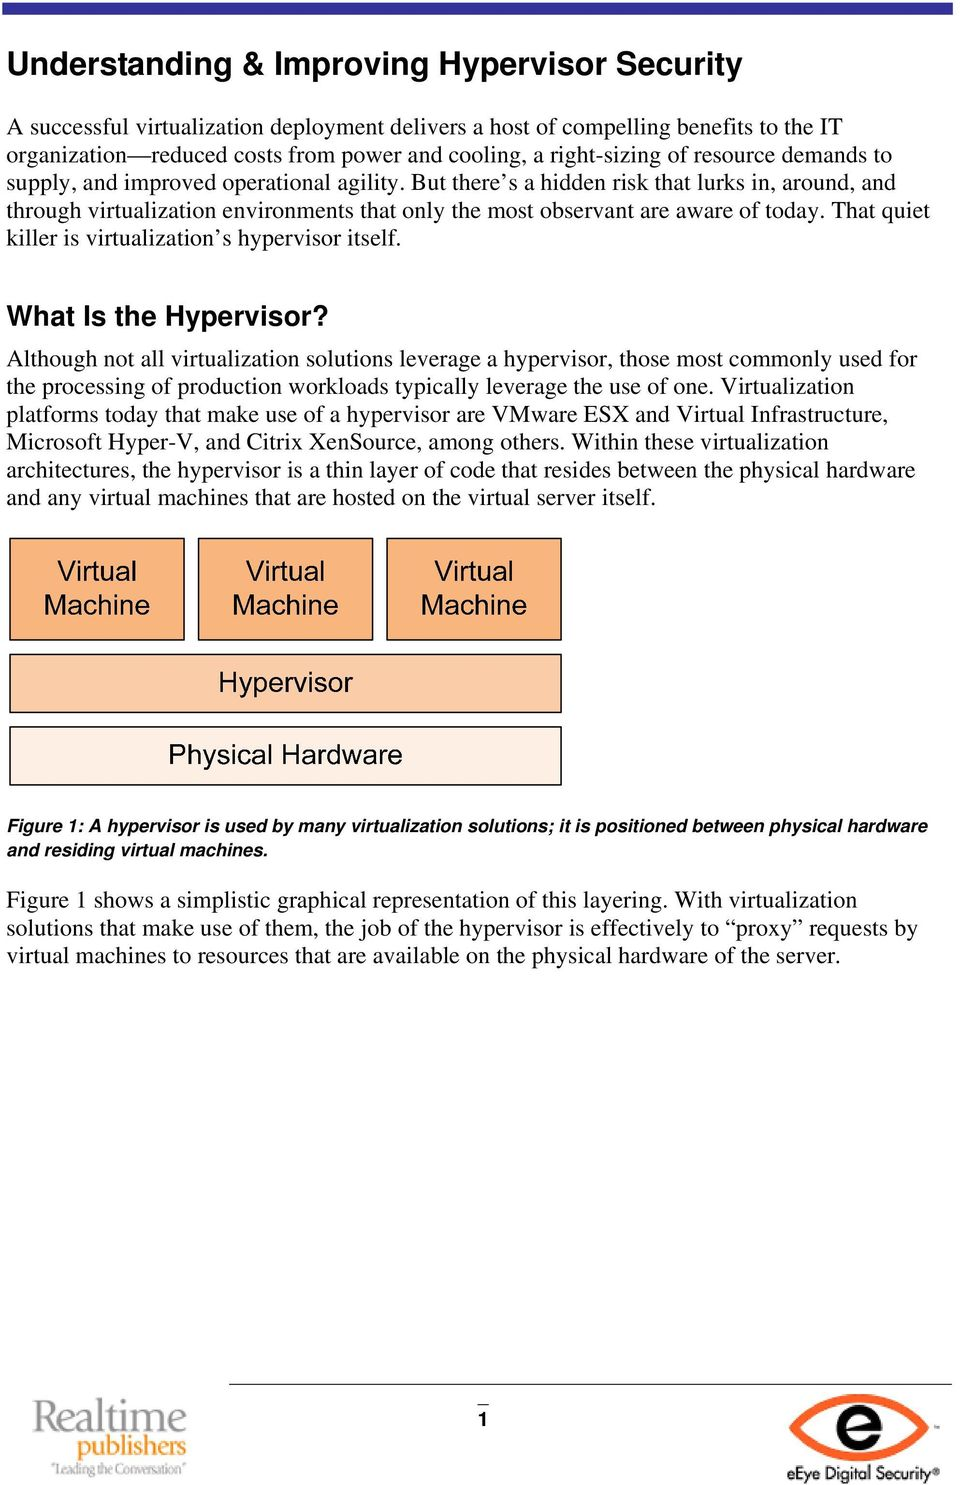 But there s a hidden risk that lurks in, around, and through virtualization environments that only the most observant are aware of today. That quiet killer is virtualization s hypervisor itself.